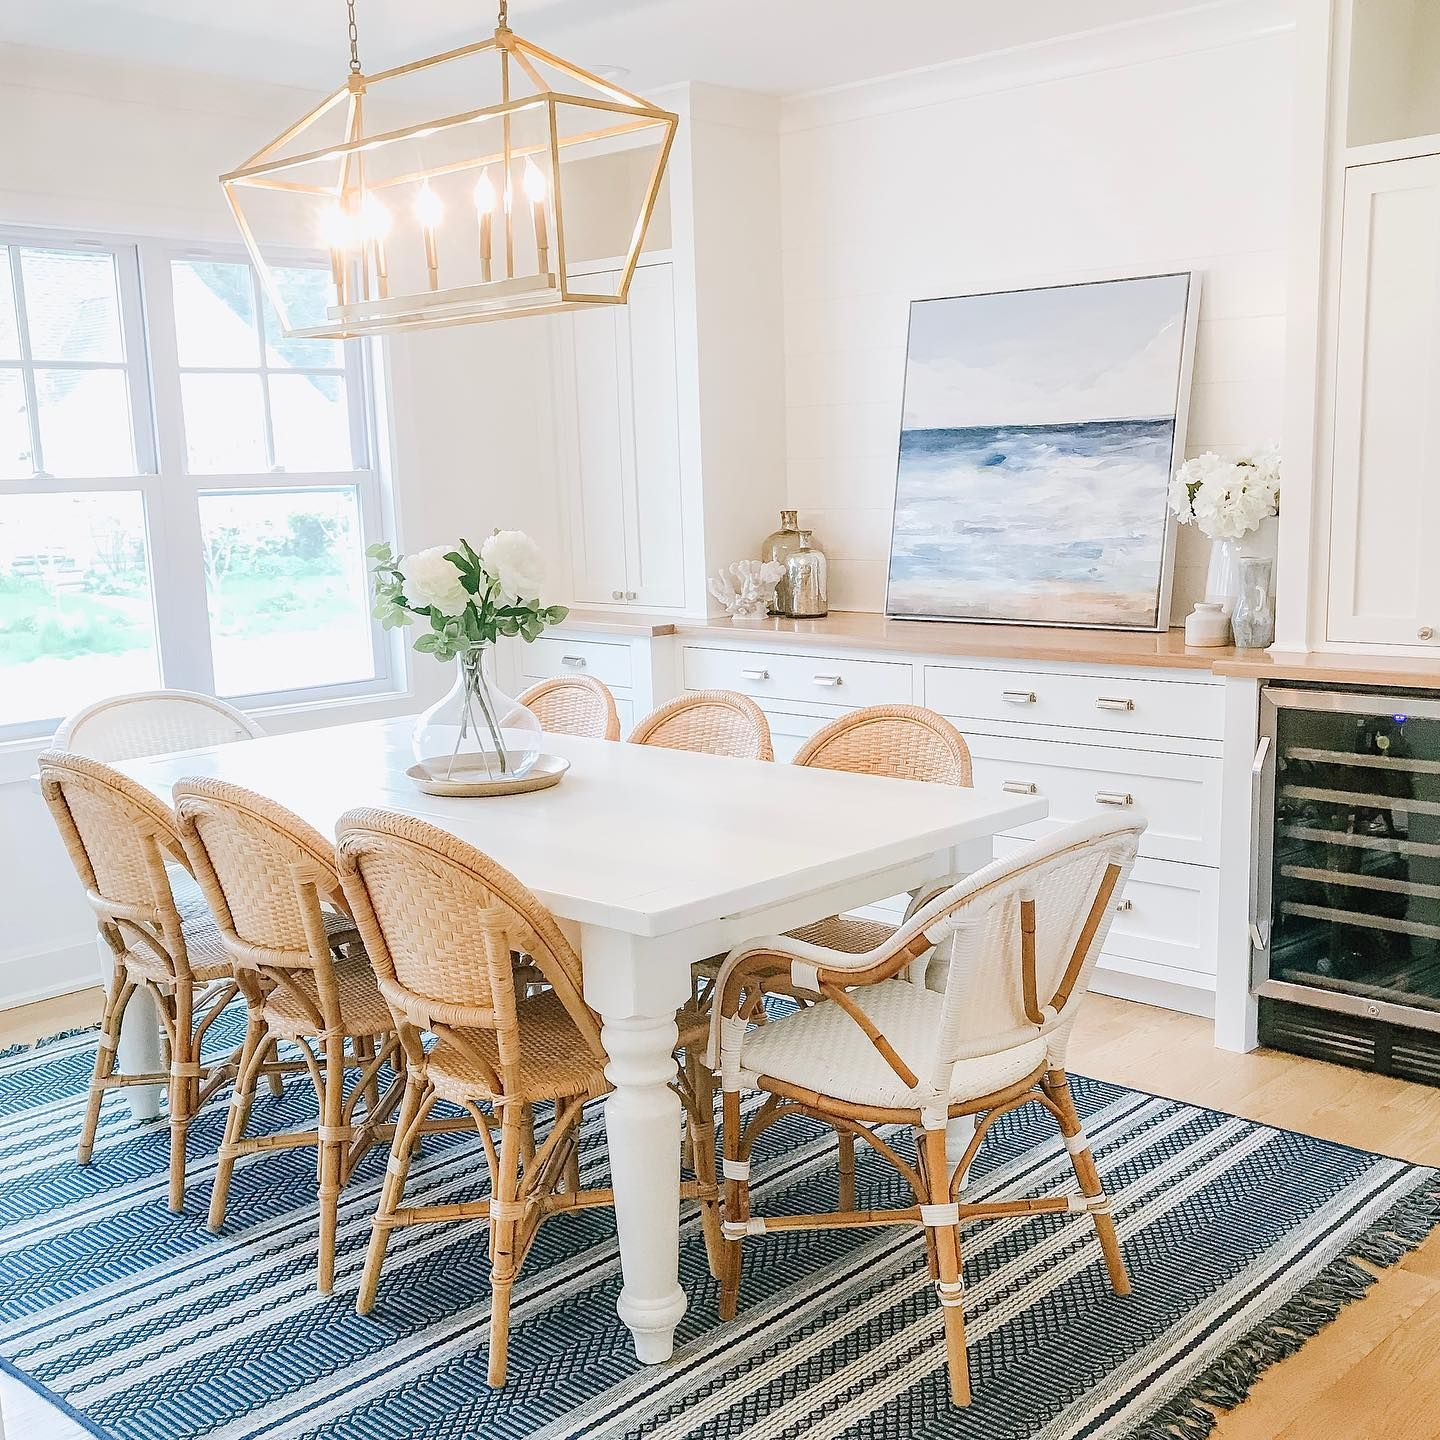 dining room, wooden floor, white wooden table, wooden chair with rattan seat, bamboo chair with white rattan, white cabinet, golden pendant